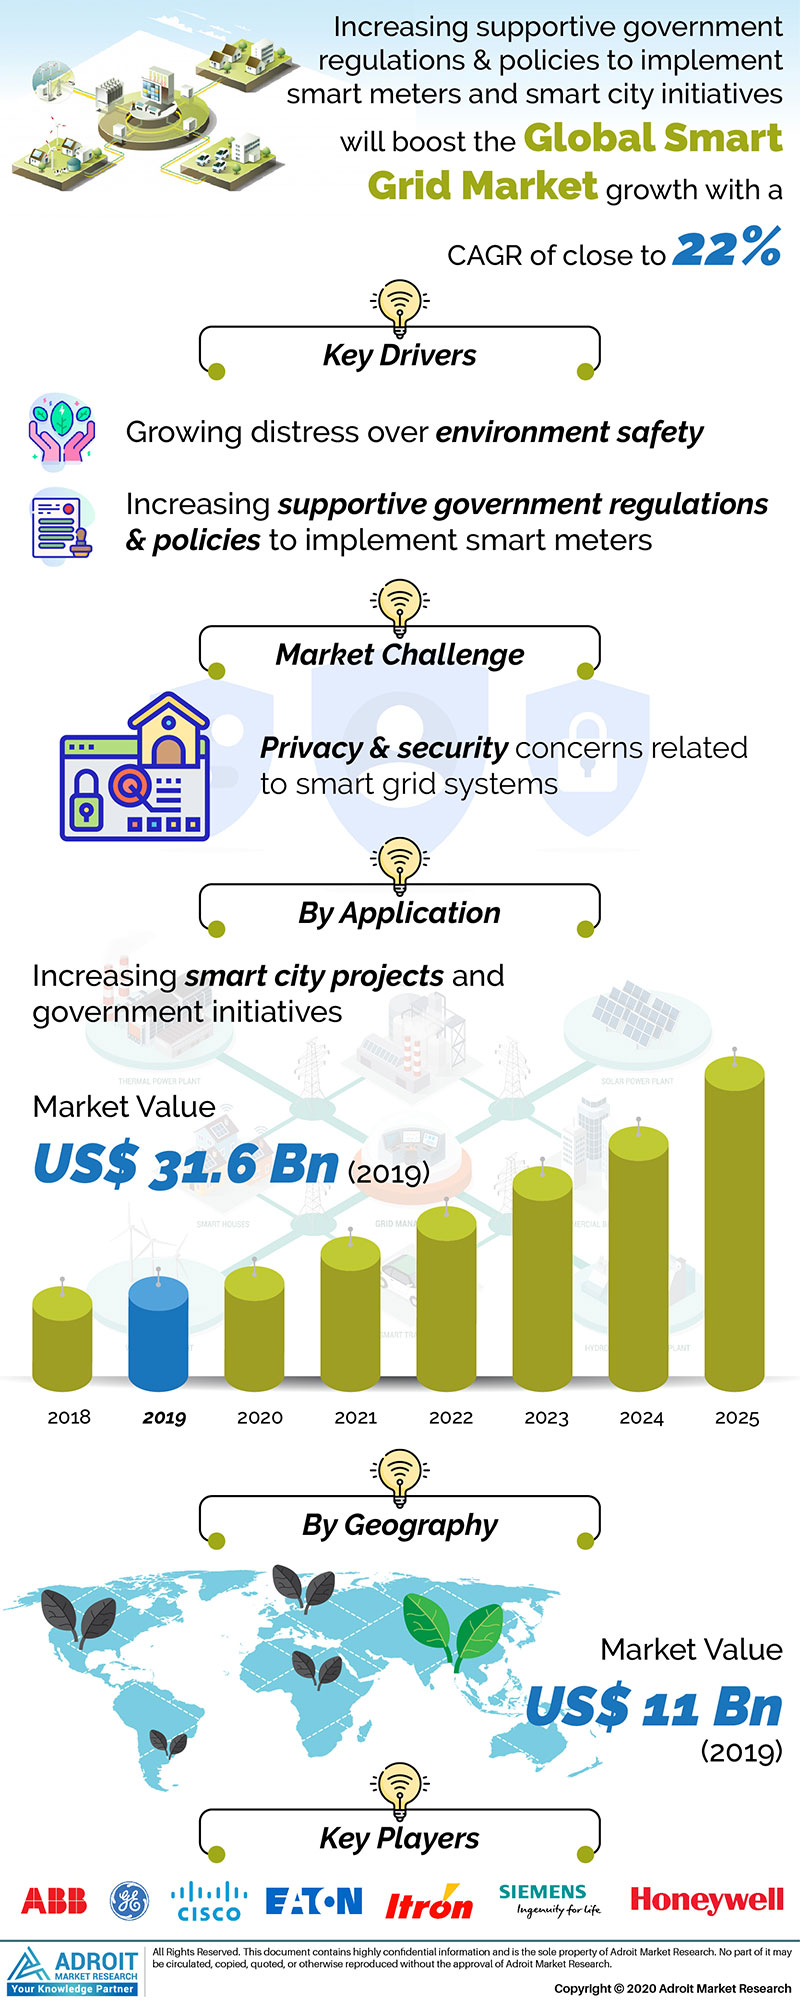 Global Smart Grid Market Size 2018 By Product Type, Formulation, End-user, Region and Forecast 2019 to 2025